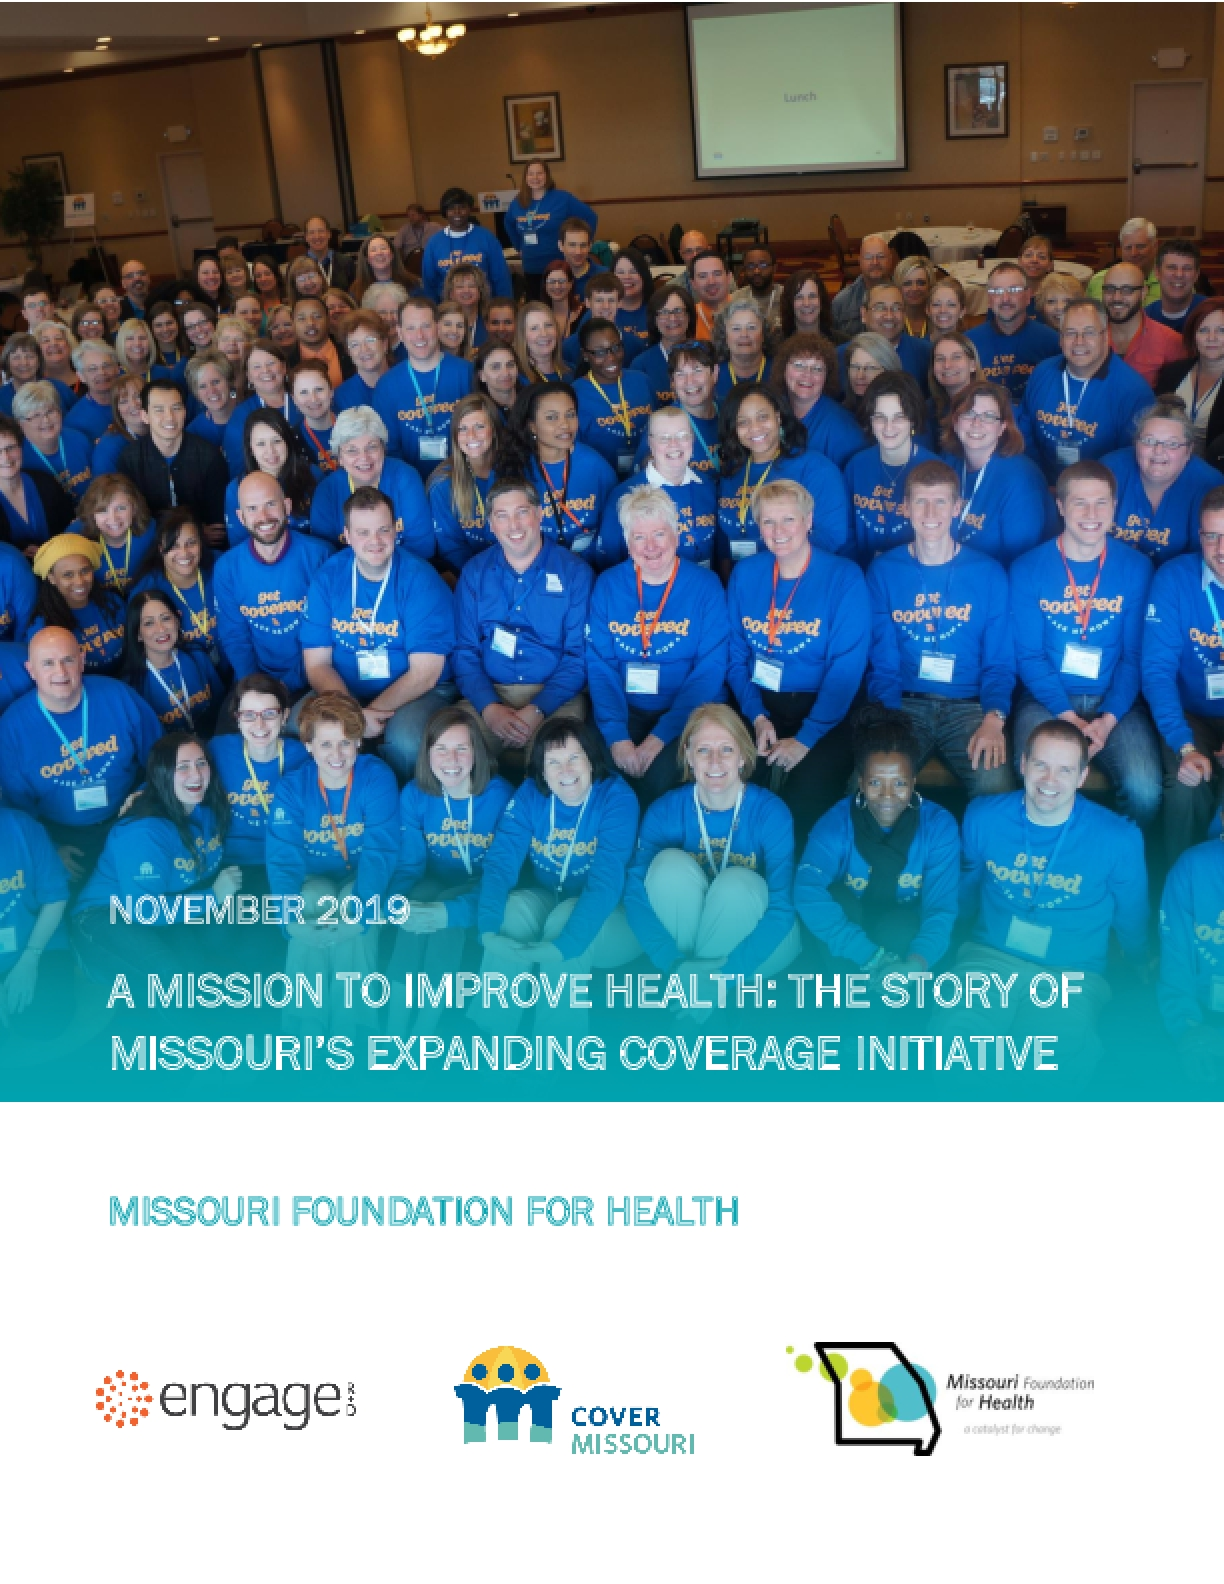 A Mission to Improve Health: The Story of Missouri's Expanding Coverage Initiative